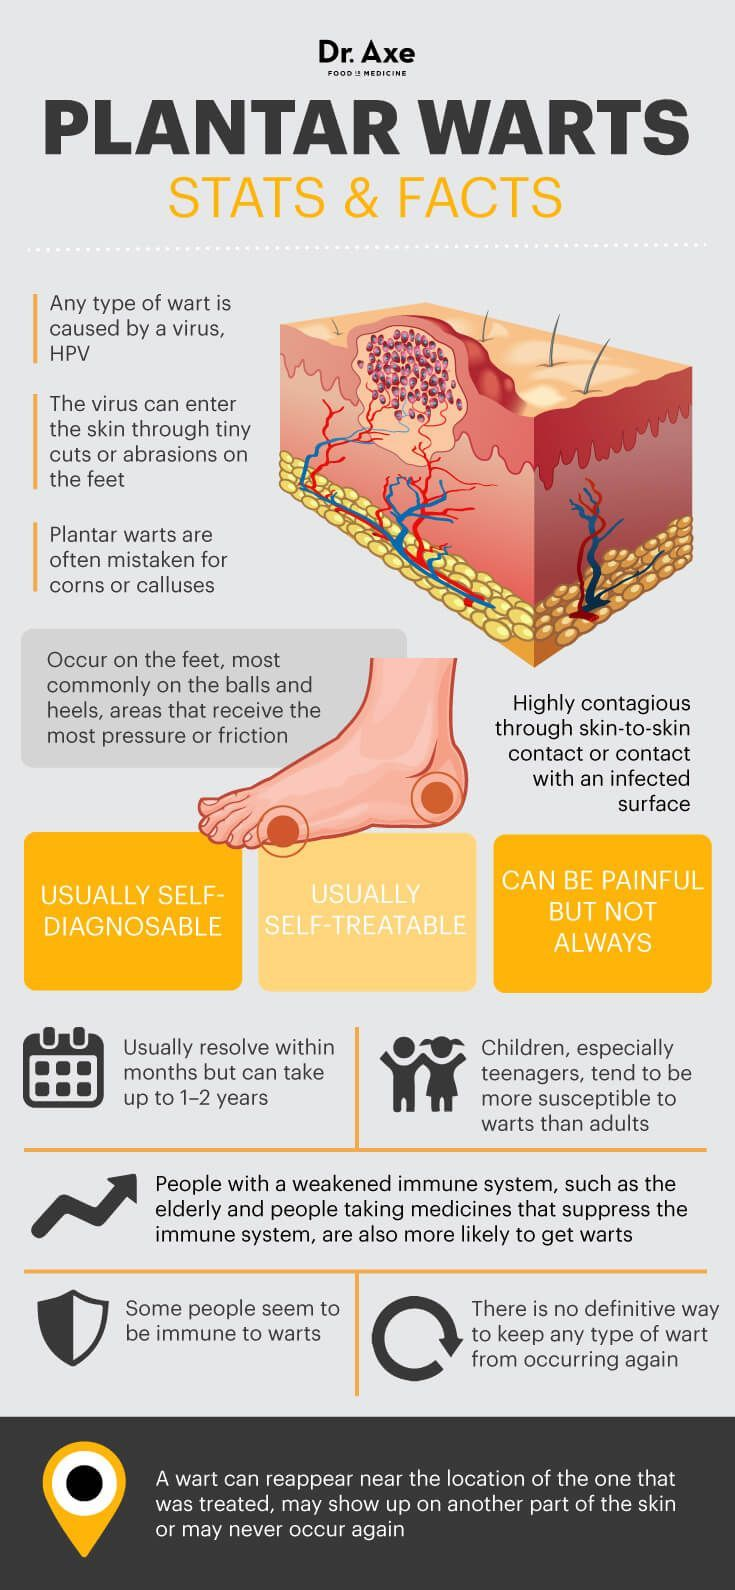 plantar warts the contagious foot condition you want to nip in the bud